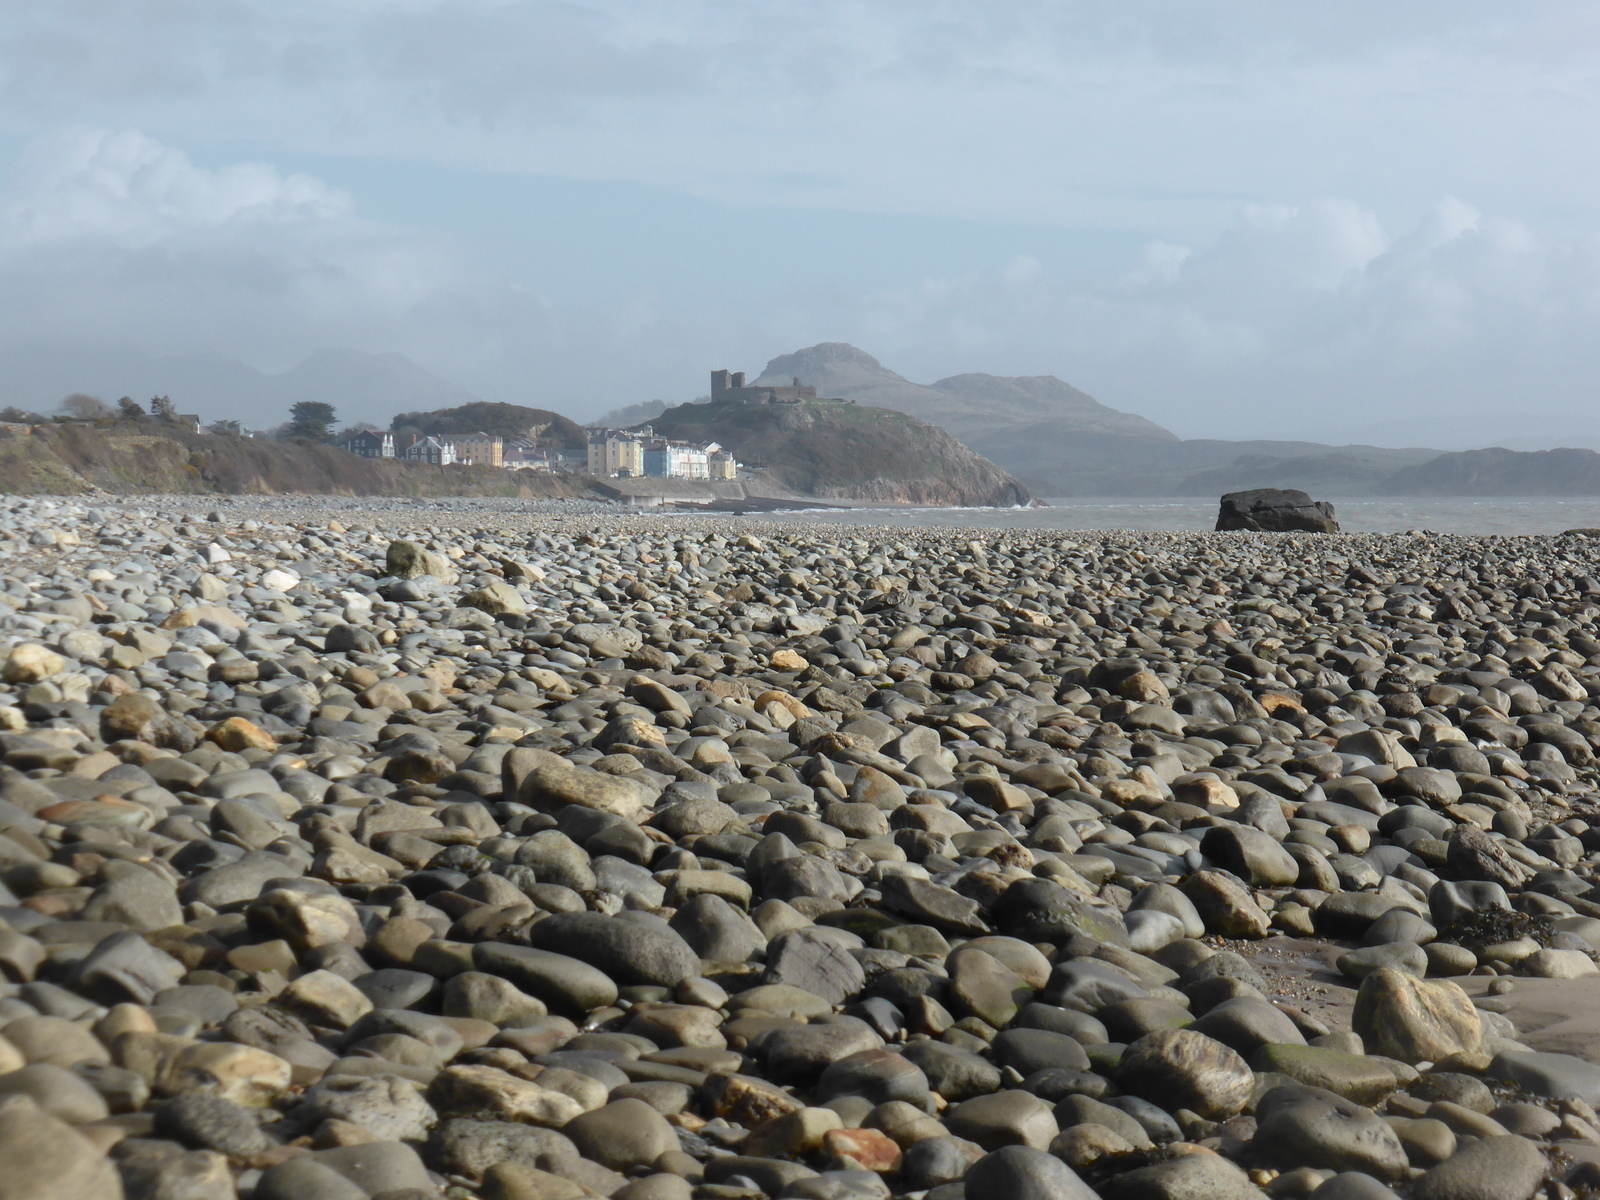 Criccieth from a pebble beach